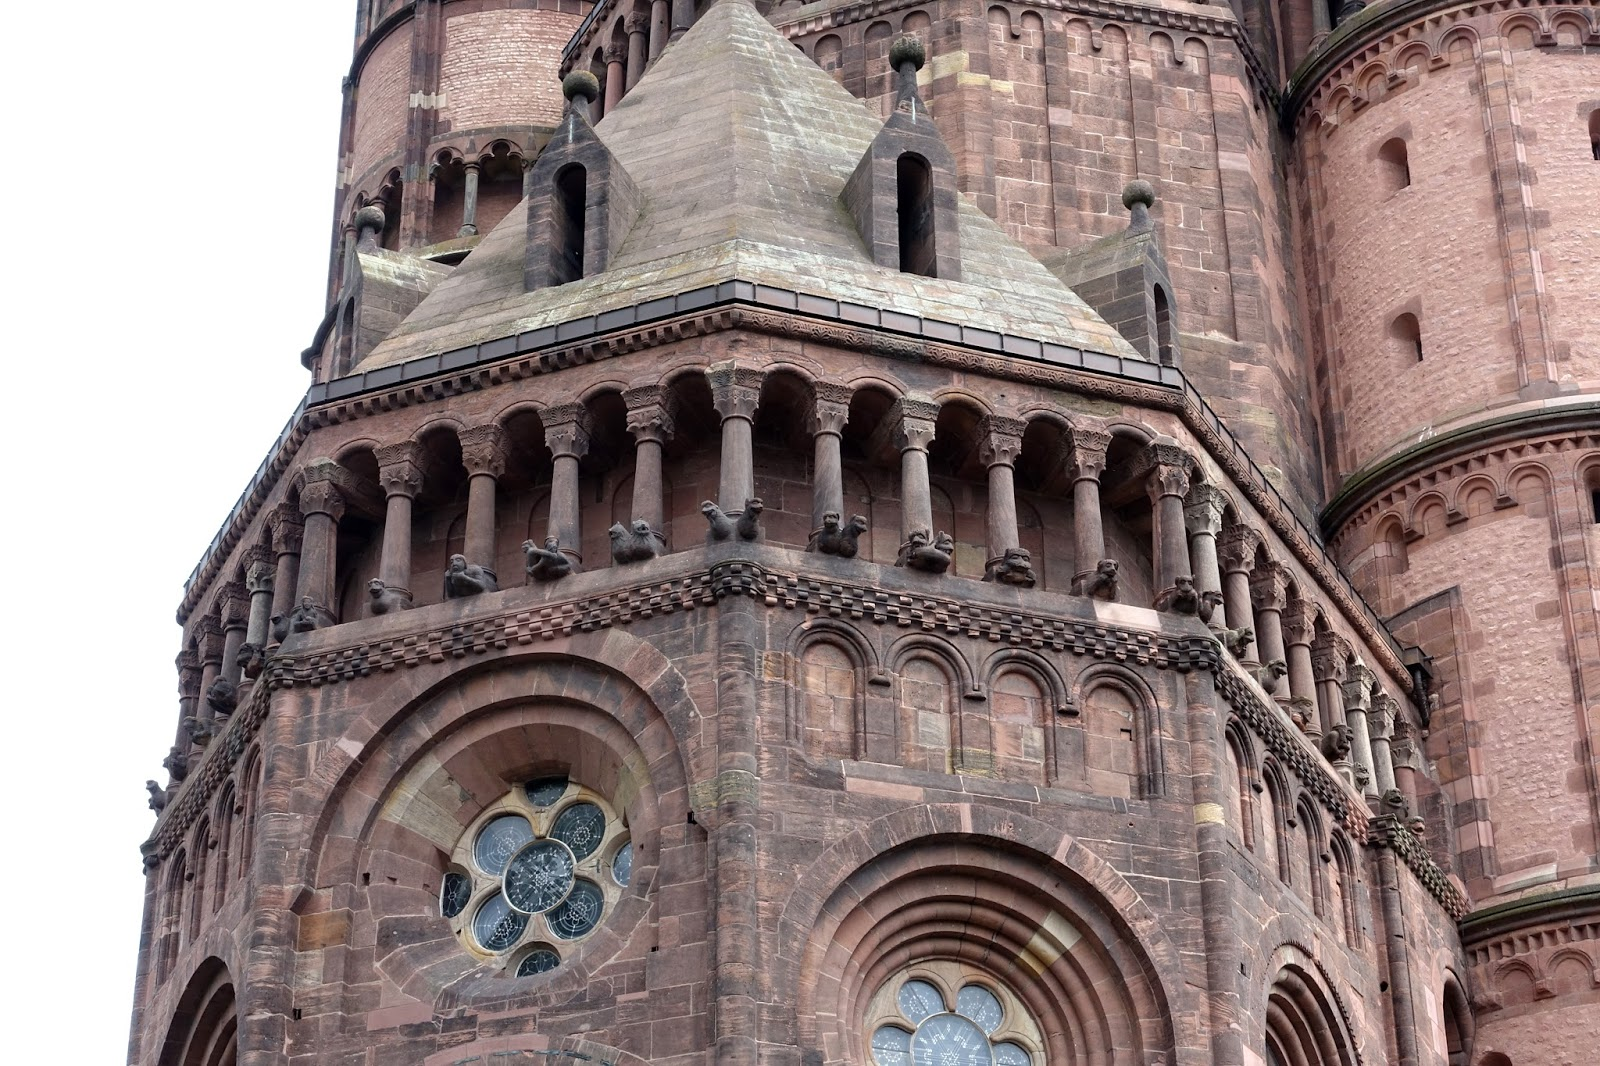 The Photo Below Is Taken In Nave Of Worms Cathedral Note That Windows And Arches Are Rounded Roman Aches Also Heavy Piers